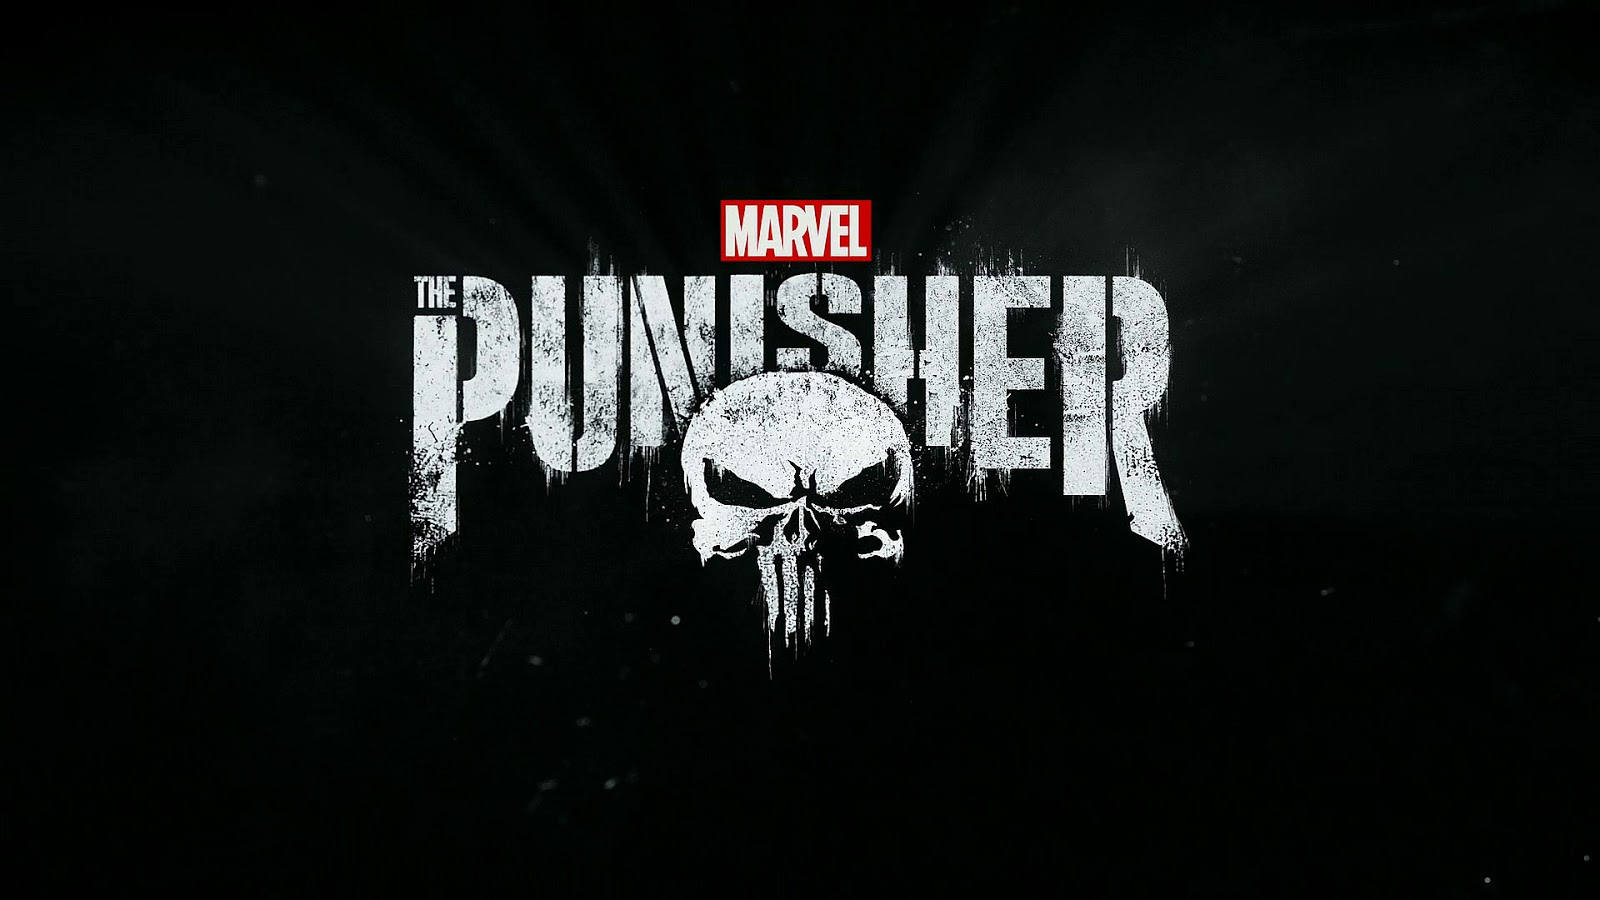 Marvel's The Punisher title logo